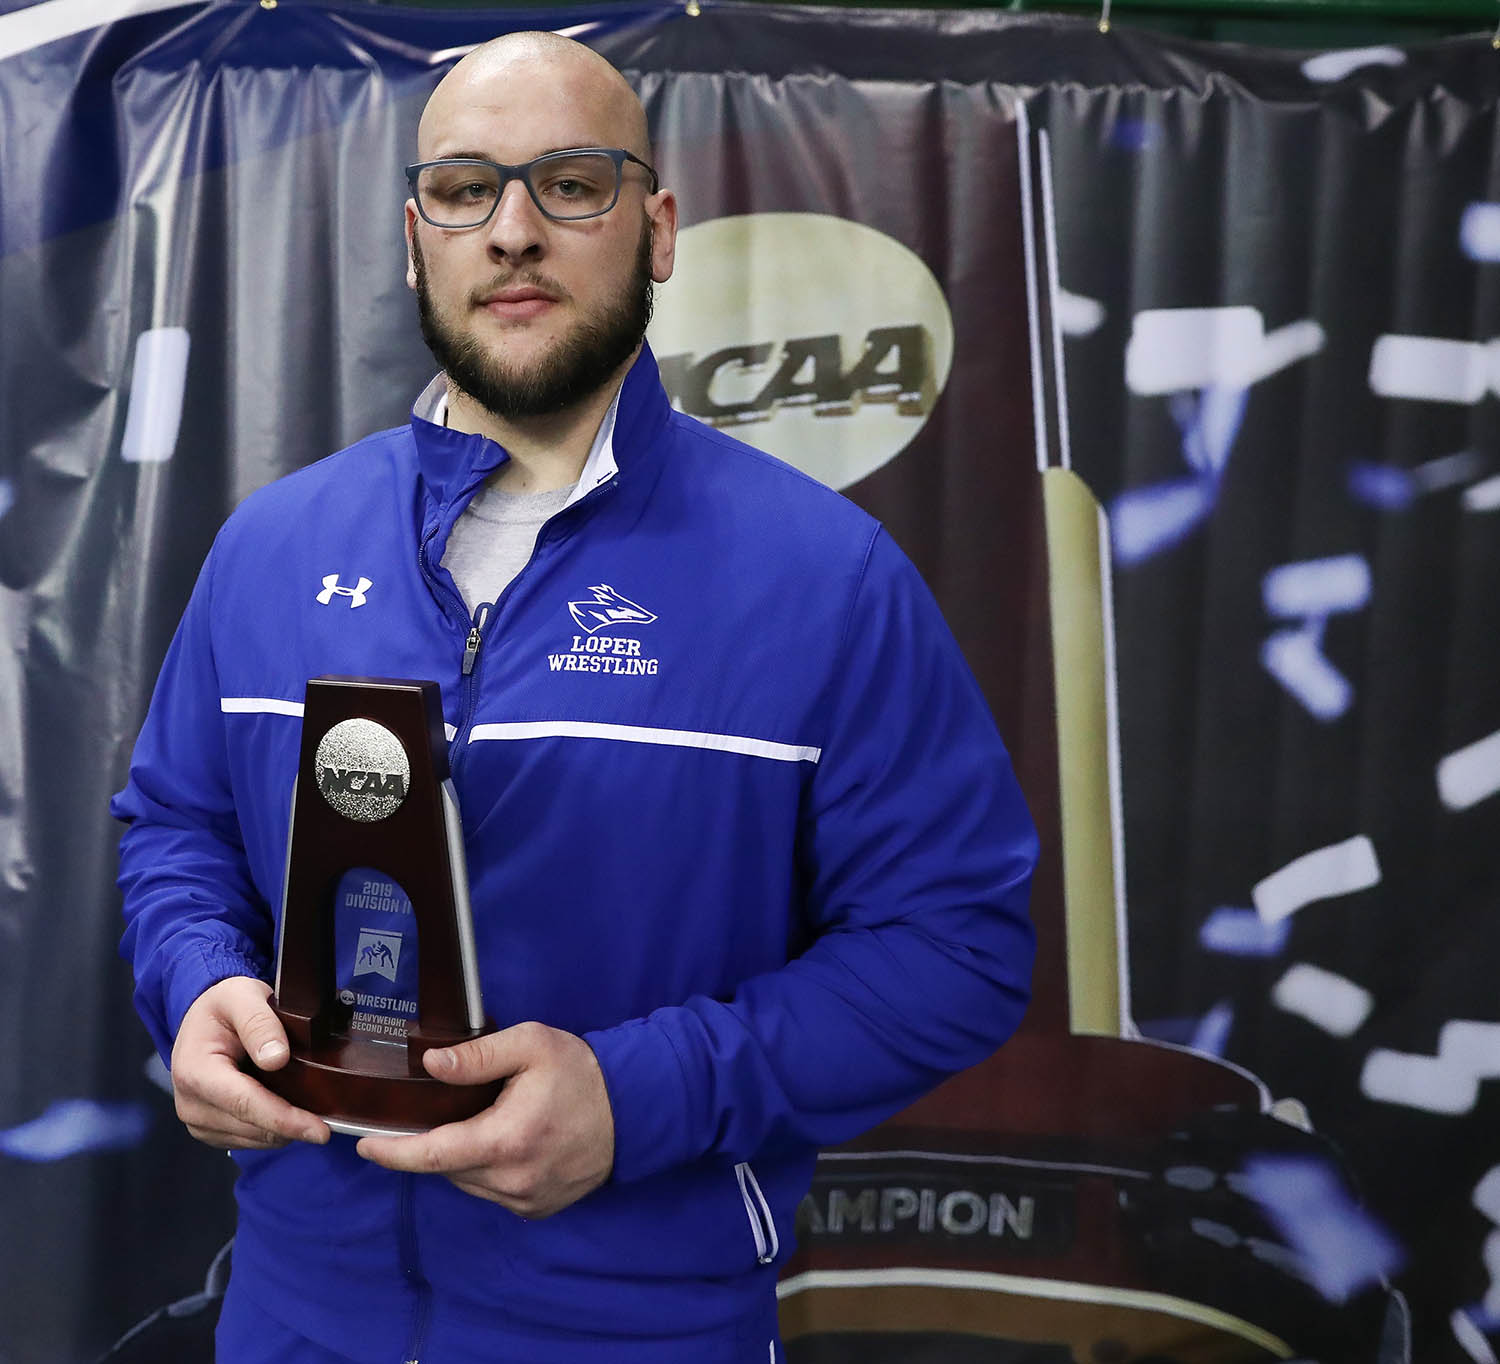 Jarrod Hinrichs was a two-time All-American at UNK, finishing second at the NCAA Division II Wrestling Championships in 2019 and eighth in 2018. His quest for a national championship ended March 12, when the NCAA canceled all remaining winter and spring championships because of the ongoing coronavirus (COVID-19) outbreak.